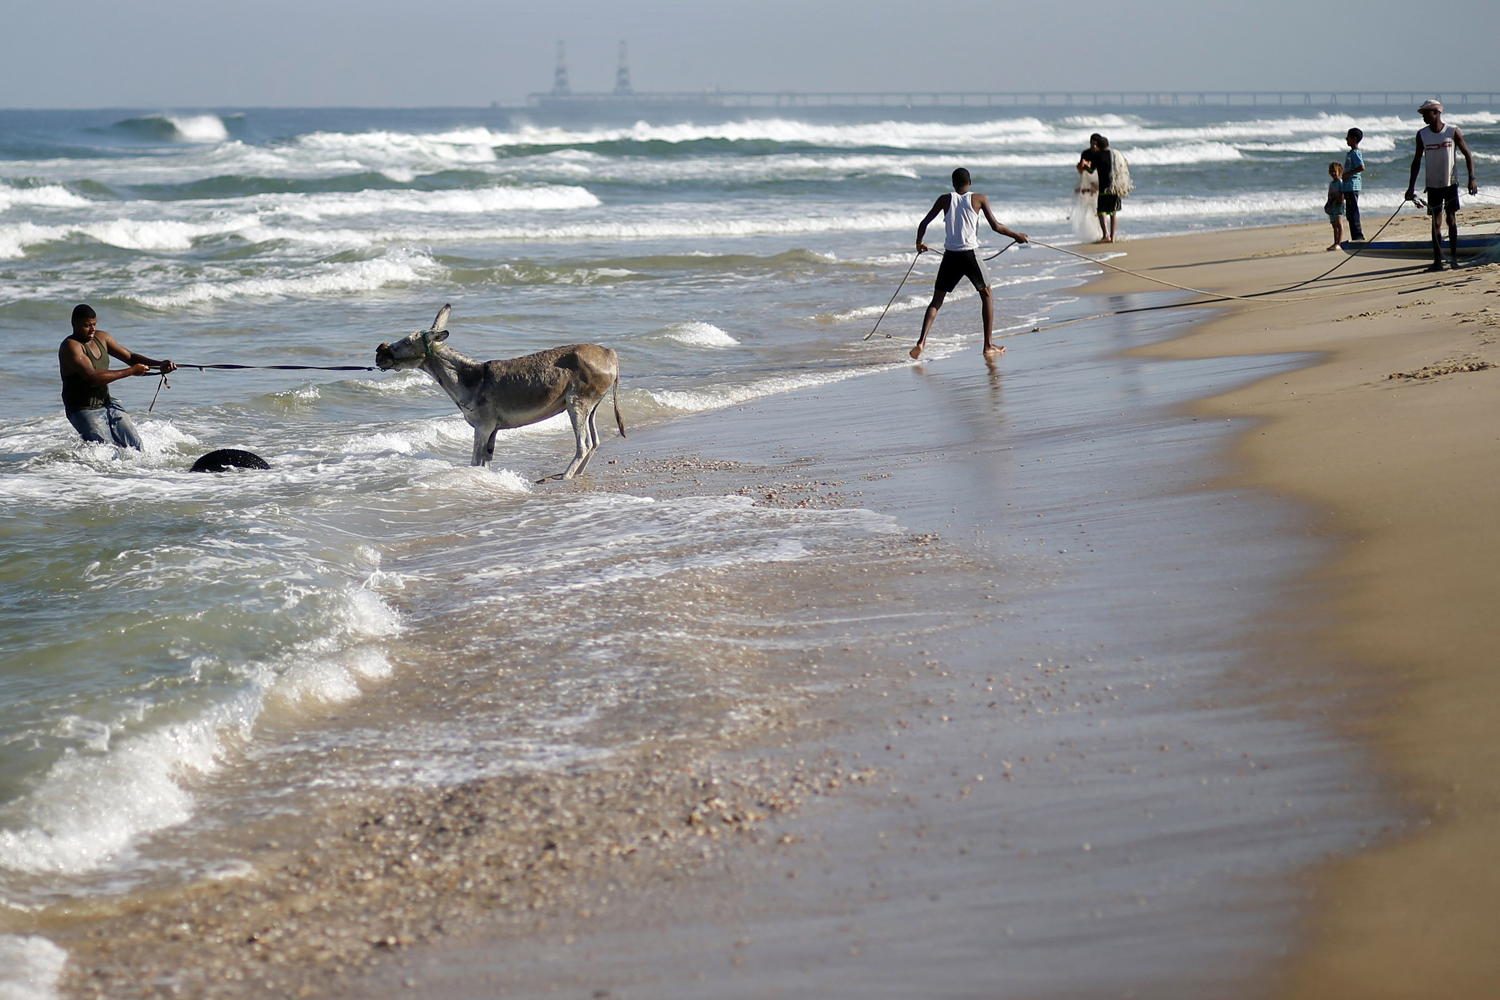 Sept. 26, 2013. A Palestinian man pulls a donkey into the sea for a wash in Gaza.